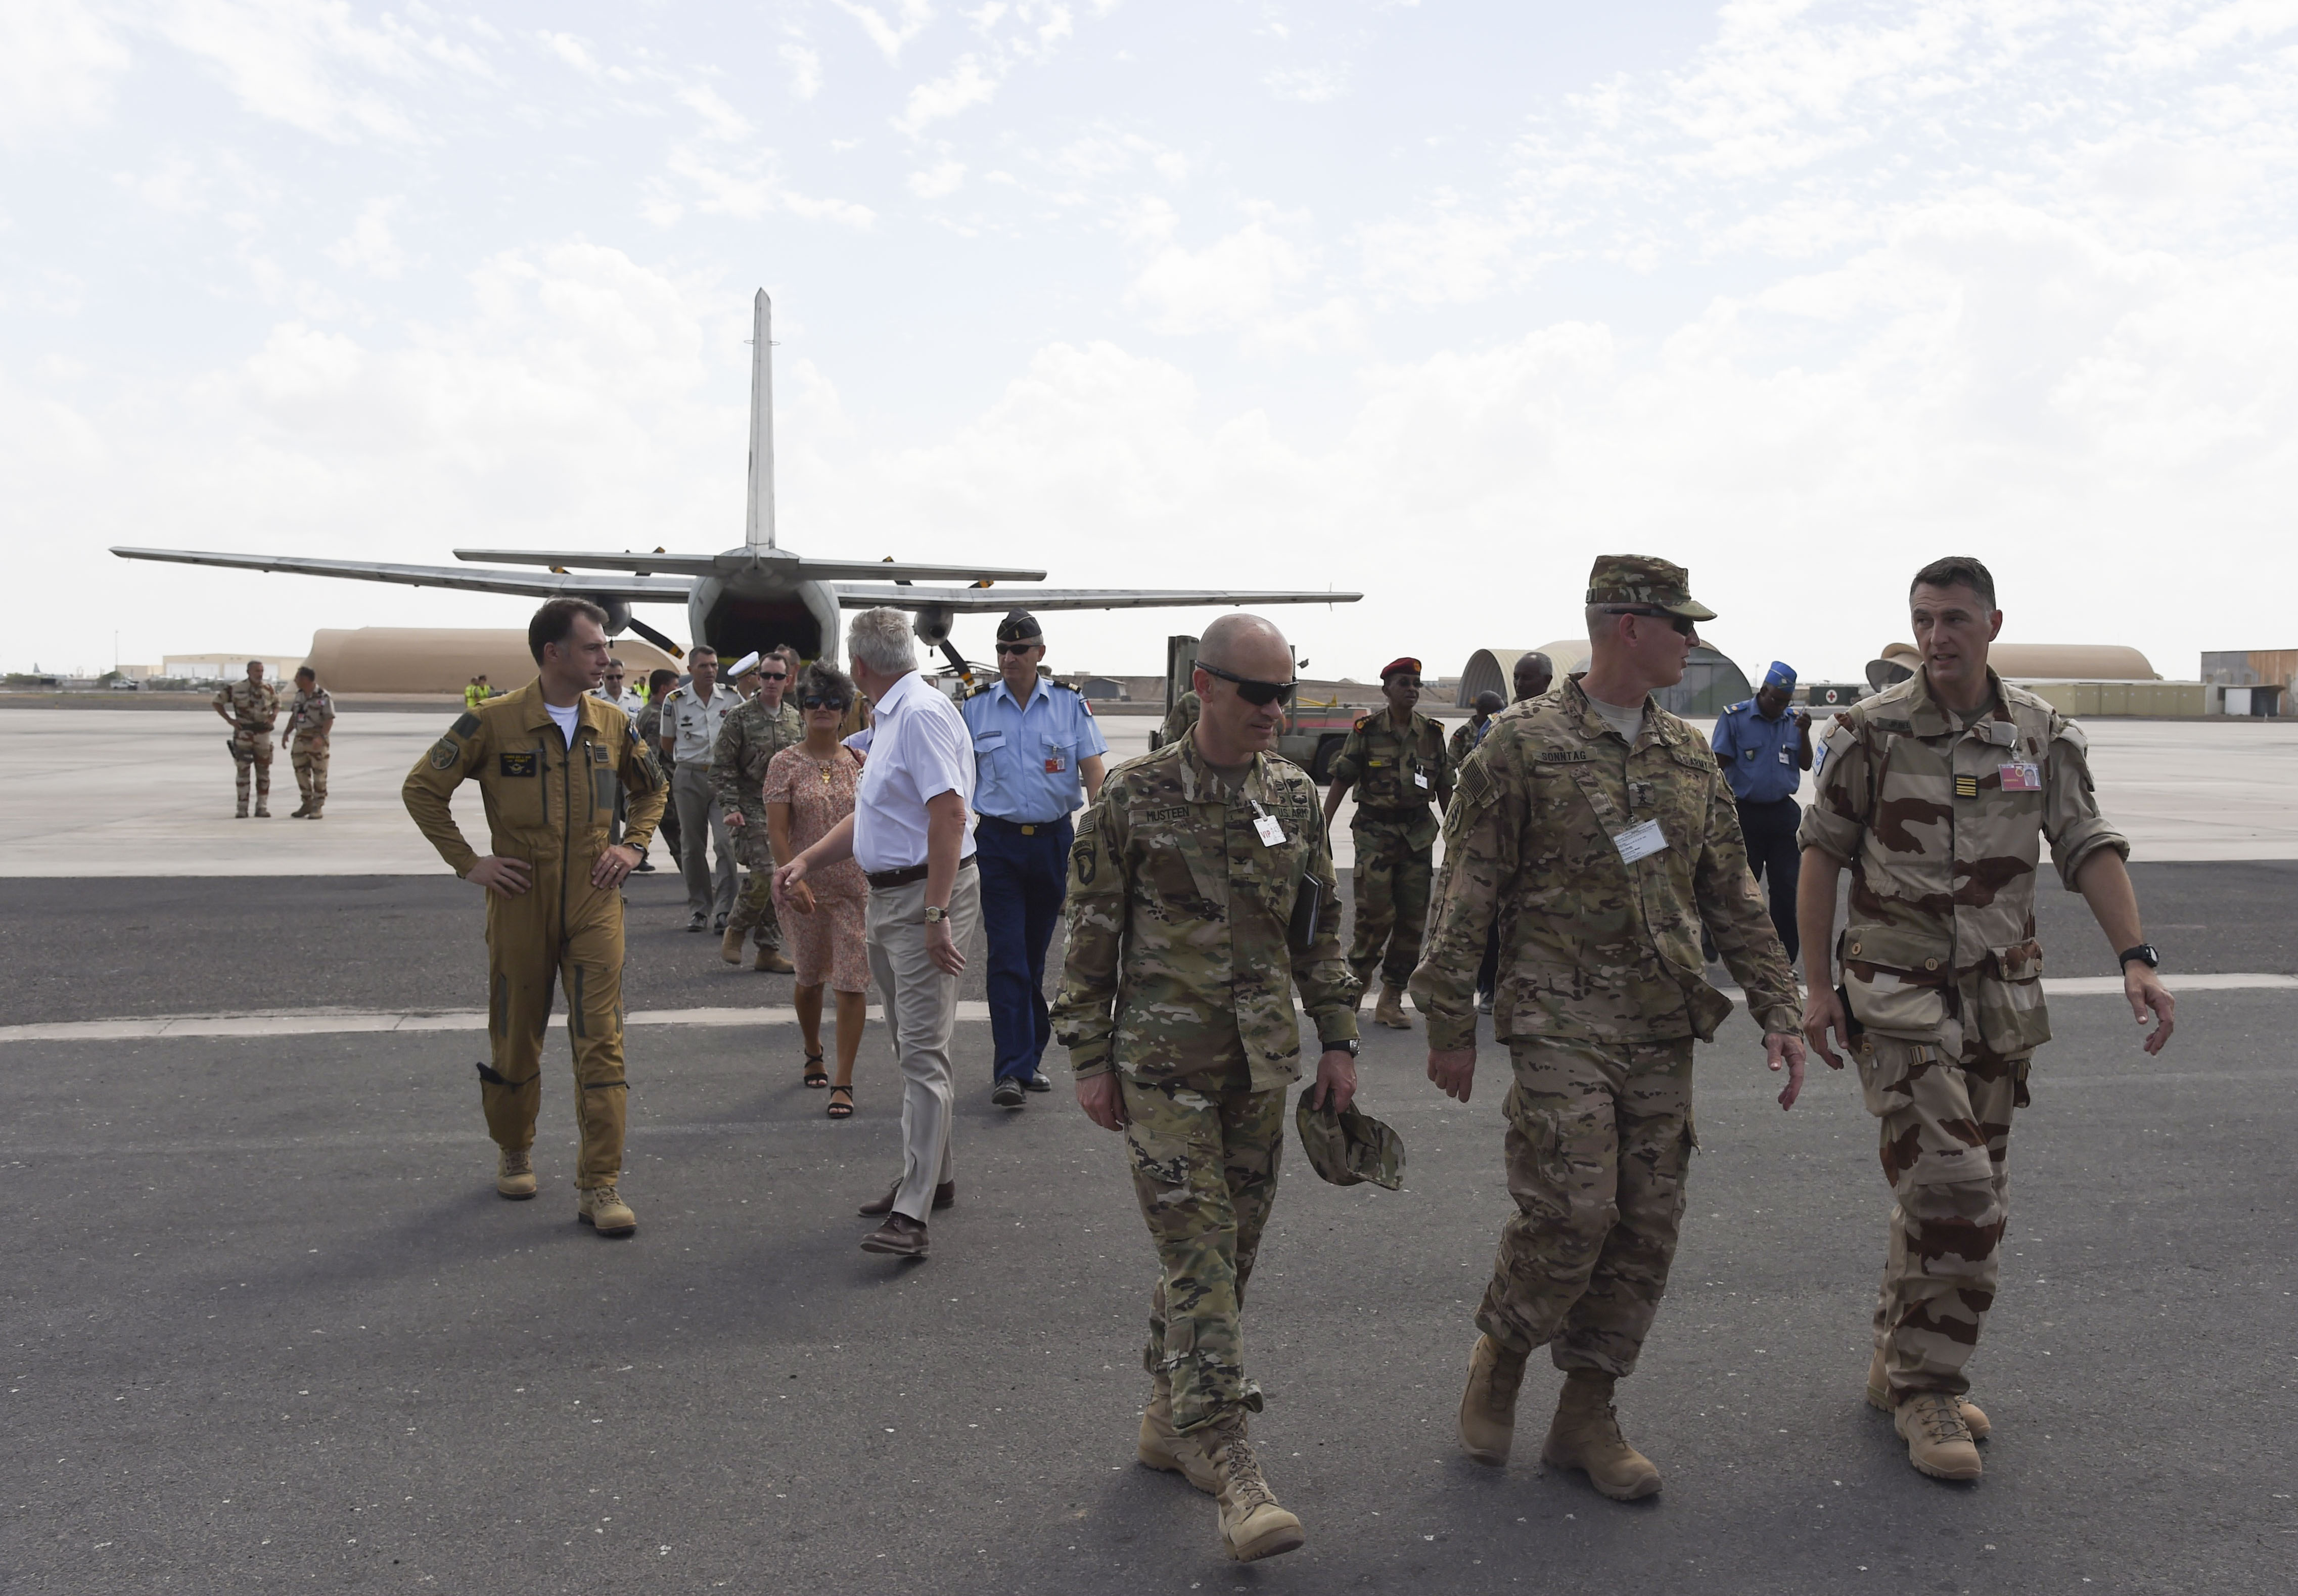 U.S. service members assigned to Combined Joint Task Force-Horn of Africa and distinguished visitors leave the runway after the completion of a non-combatant evacuation exercise (NEO) at the French Marine 5th Regiment, Nov. 16, 2016, in Djibouti, Djibouti. The French invited international partners to the exercise to allow them to observe and exchange information about the event. The NEO exercise gave the French and their guests the opportunity to practice an evacuation with international partners. (U.S. Air National Guard photo by Staff Sgt. Penny Snoozy)